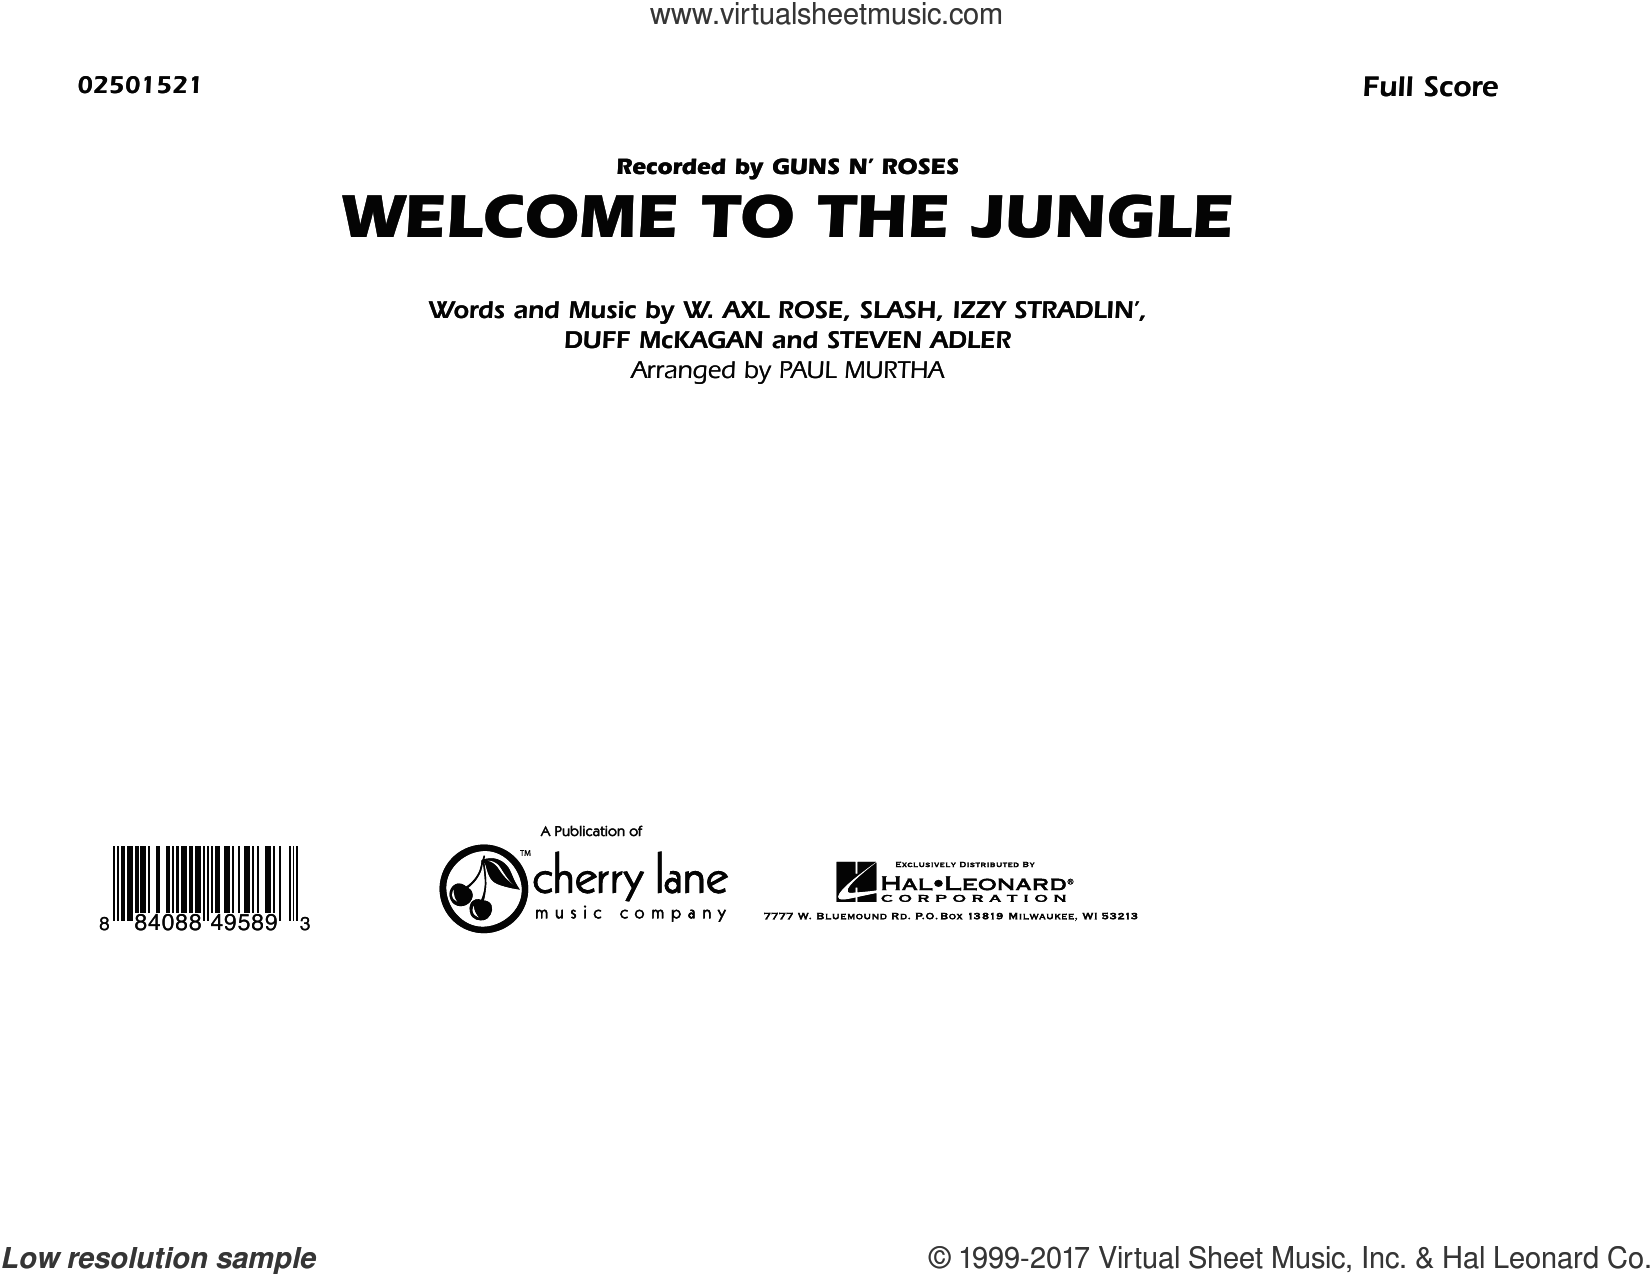 Slash - Welcome To The Jungle sheet music (complete collection) for  marching band